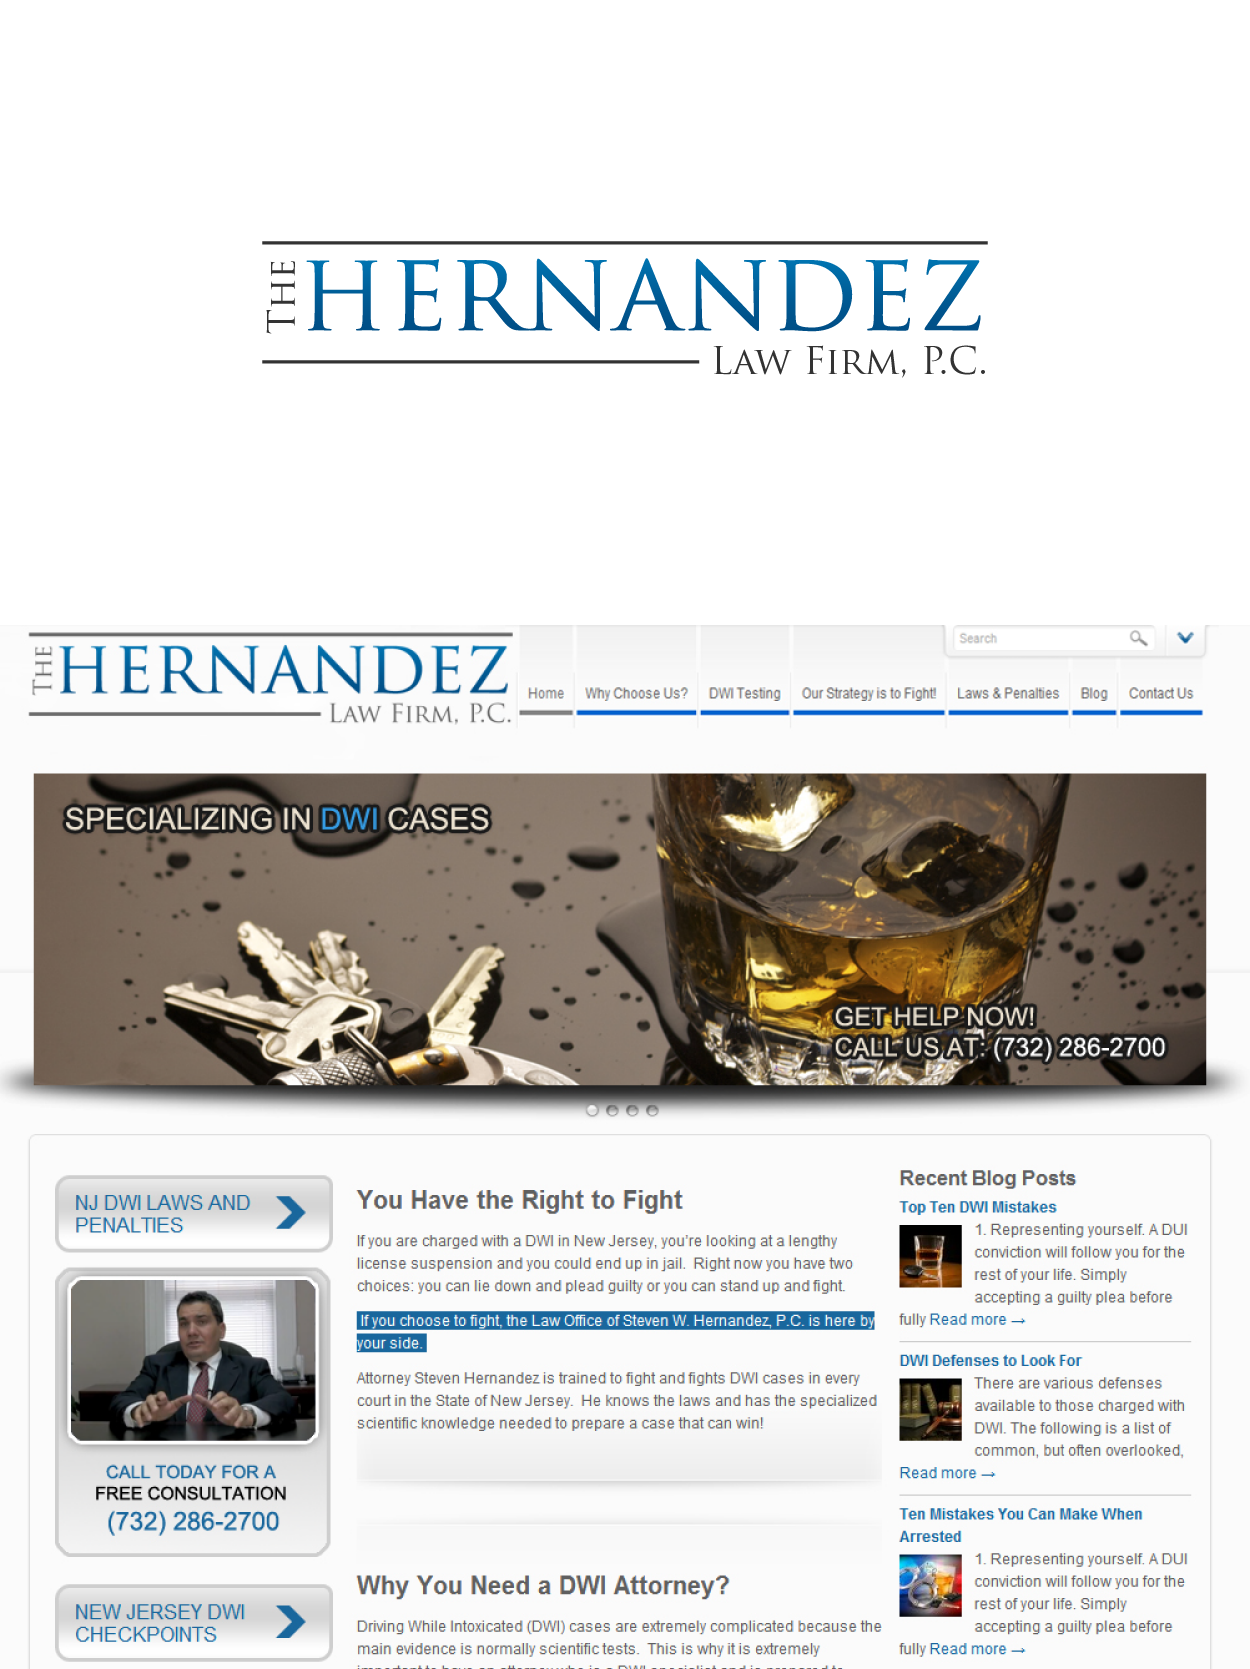 Create the next logo for The Hernandez Law Firm, P.C.